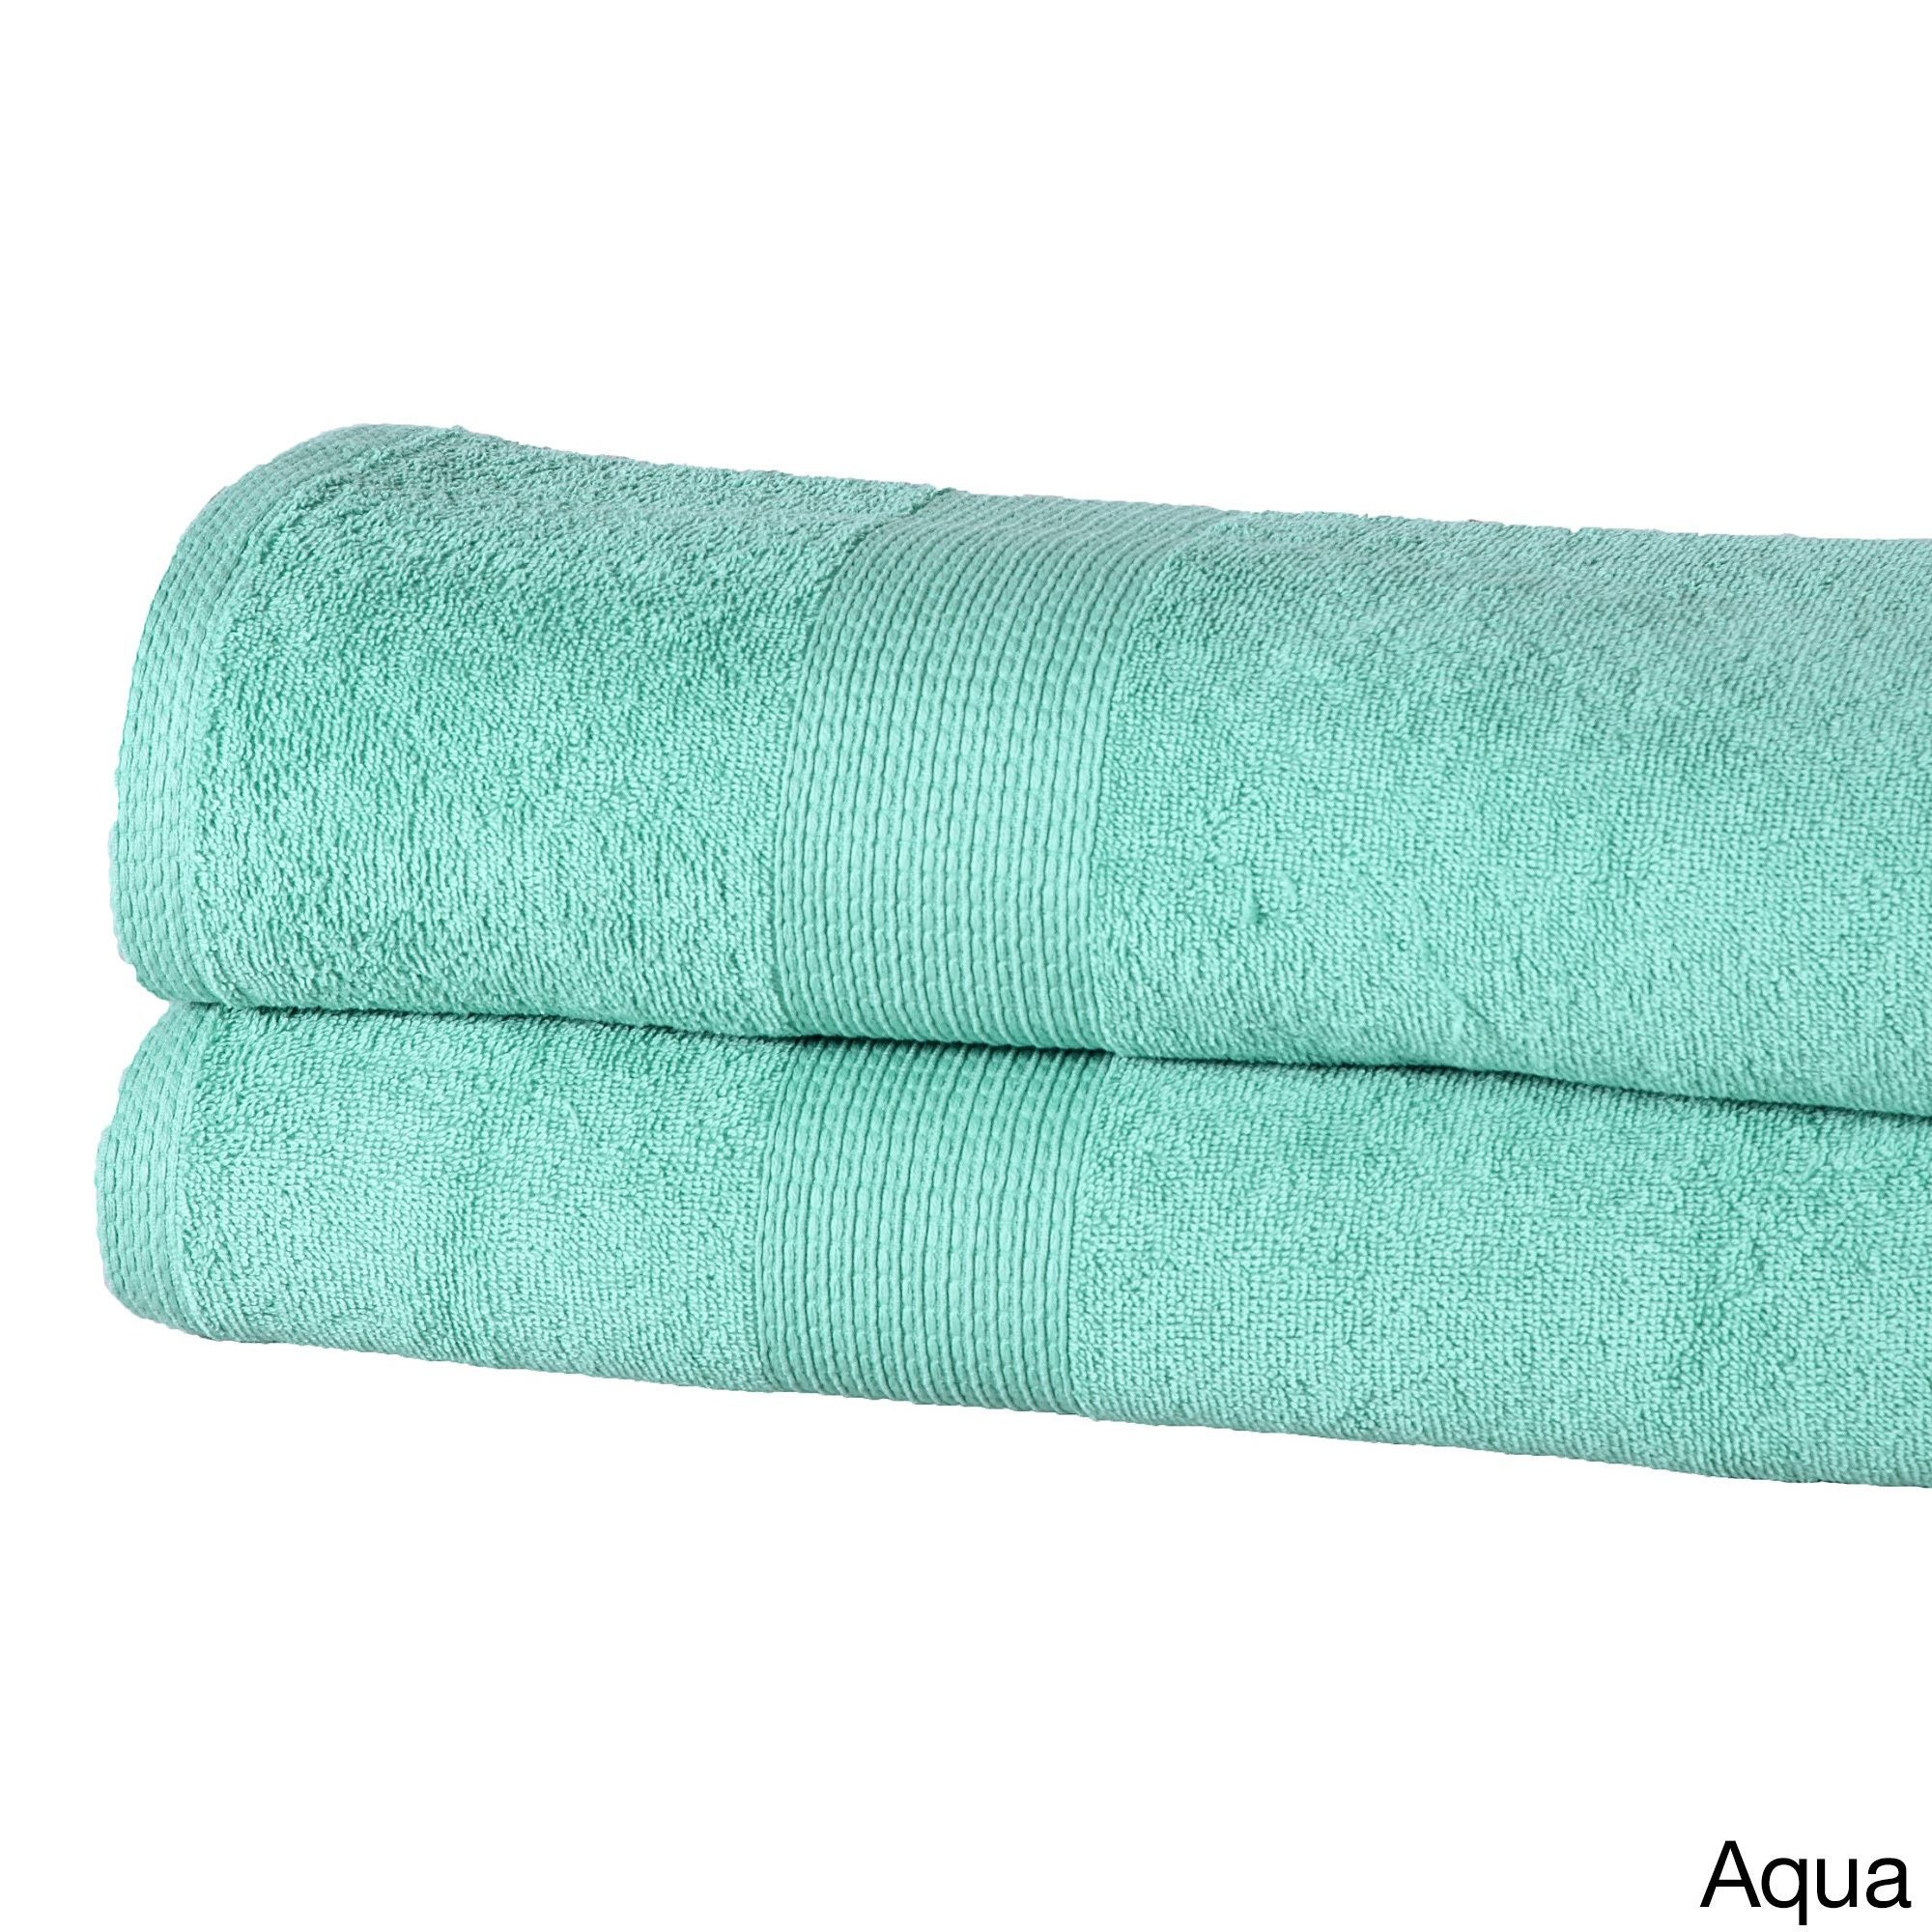 Oversized Bath Sheets Casa Platino Solidcolored Cotton 550 Gsm Oversized Bath Sheets Set